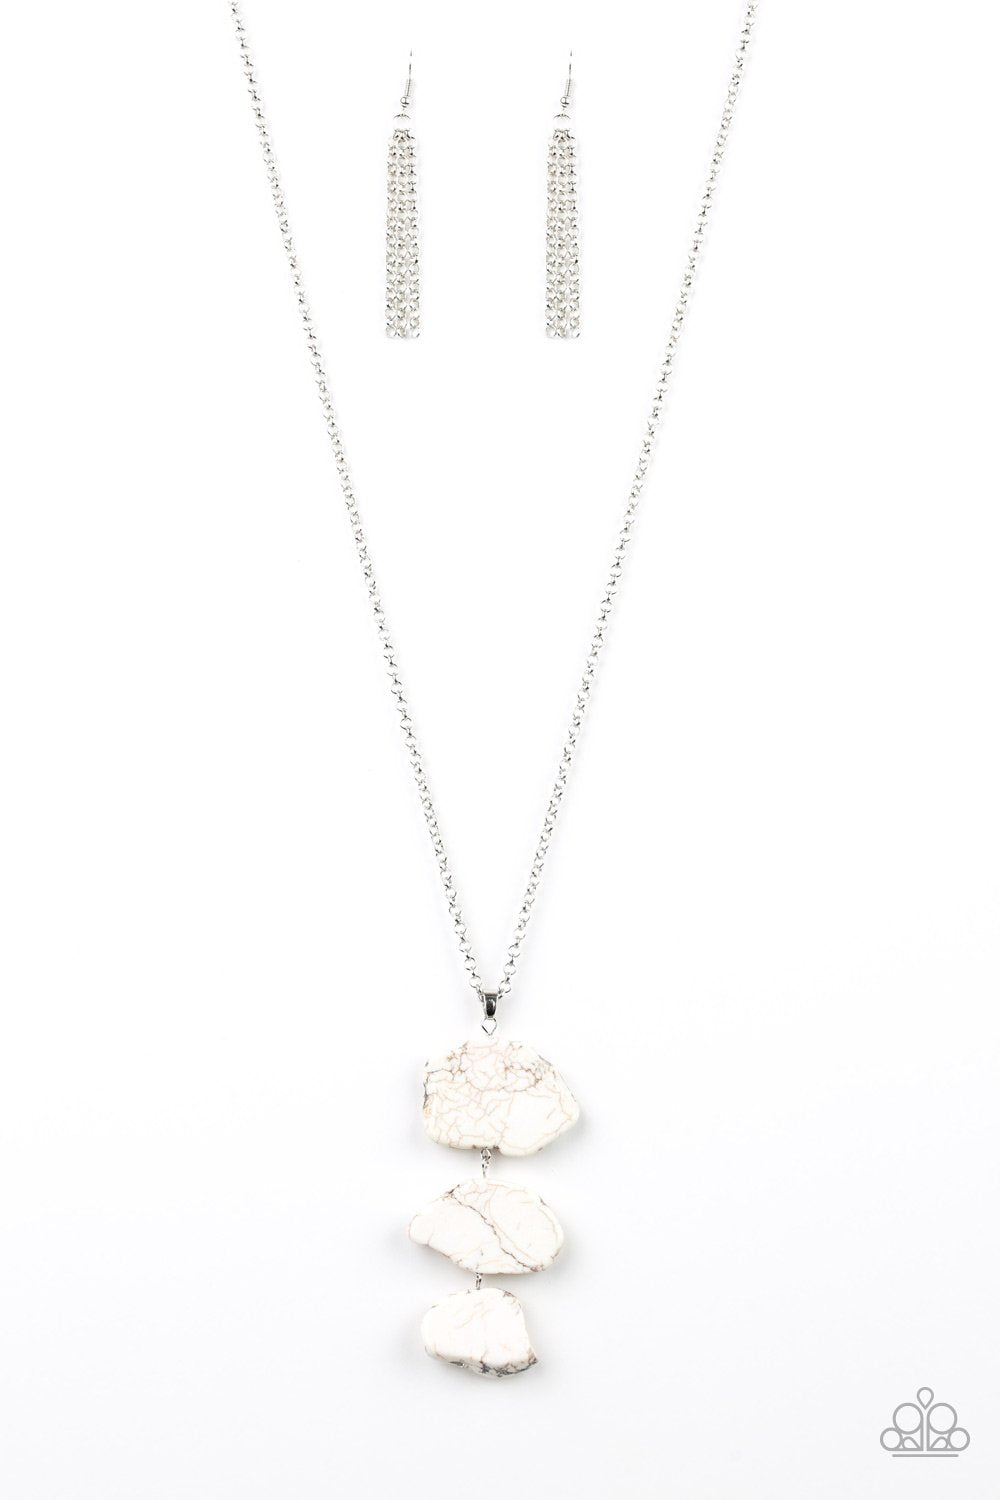 Be Adored Jewelry On The ROAM Again White Paparazzi Necklace